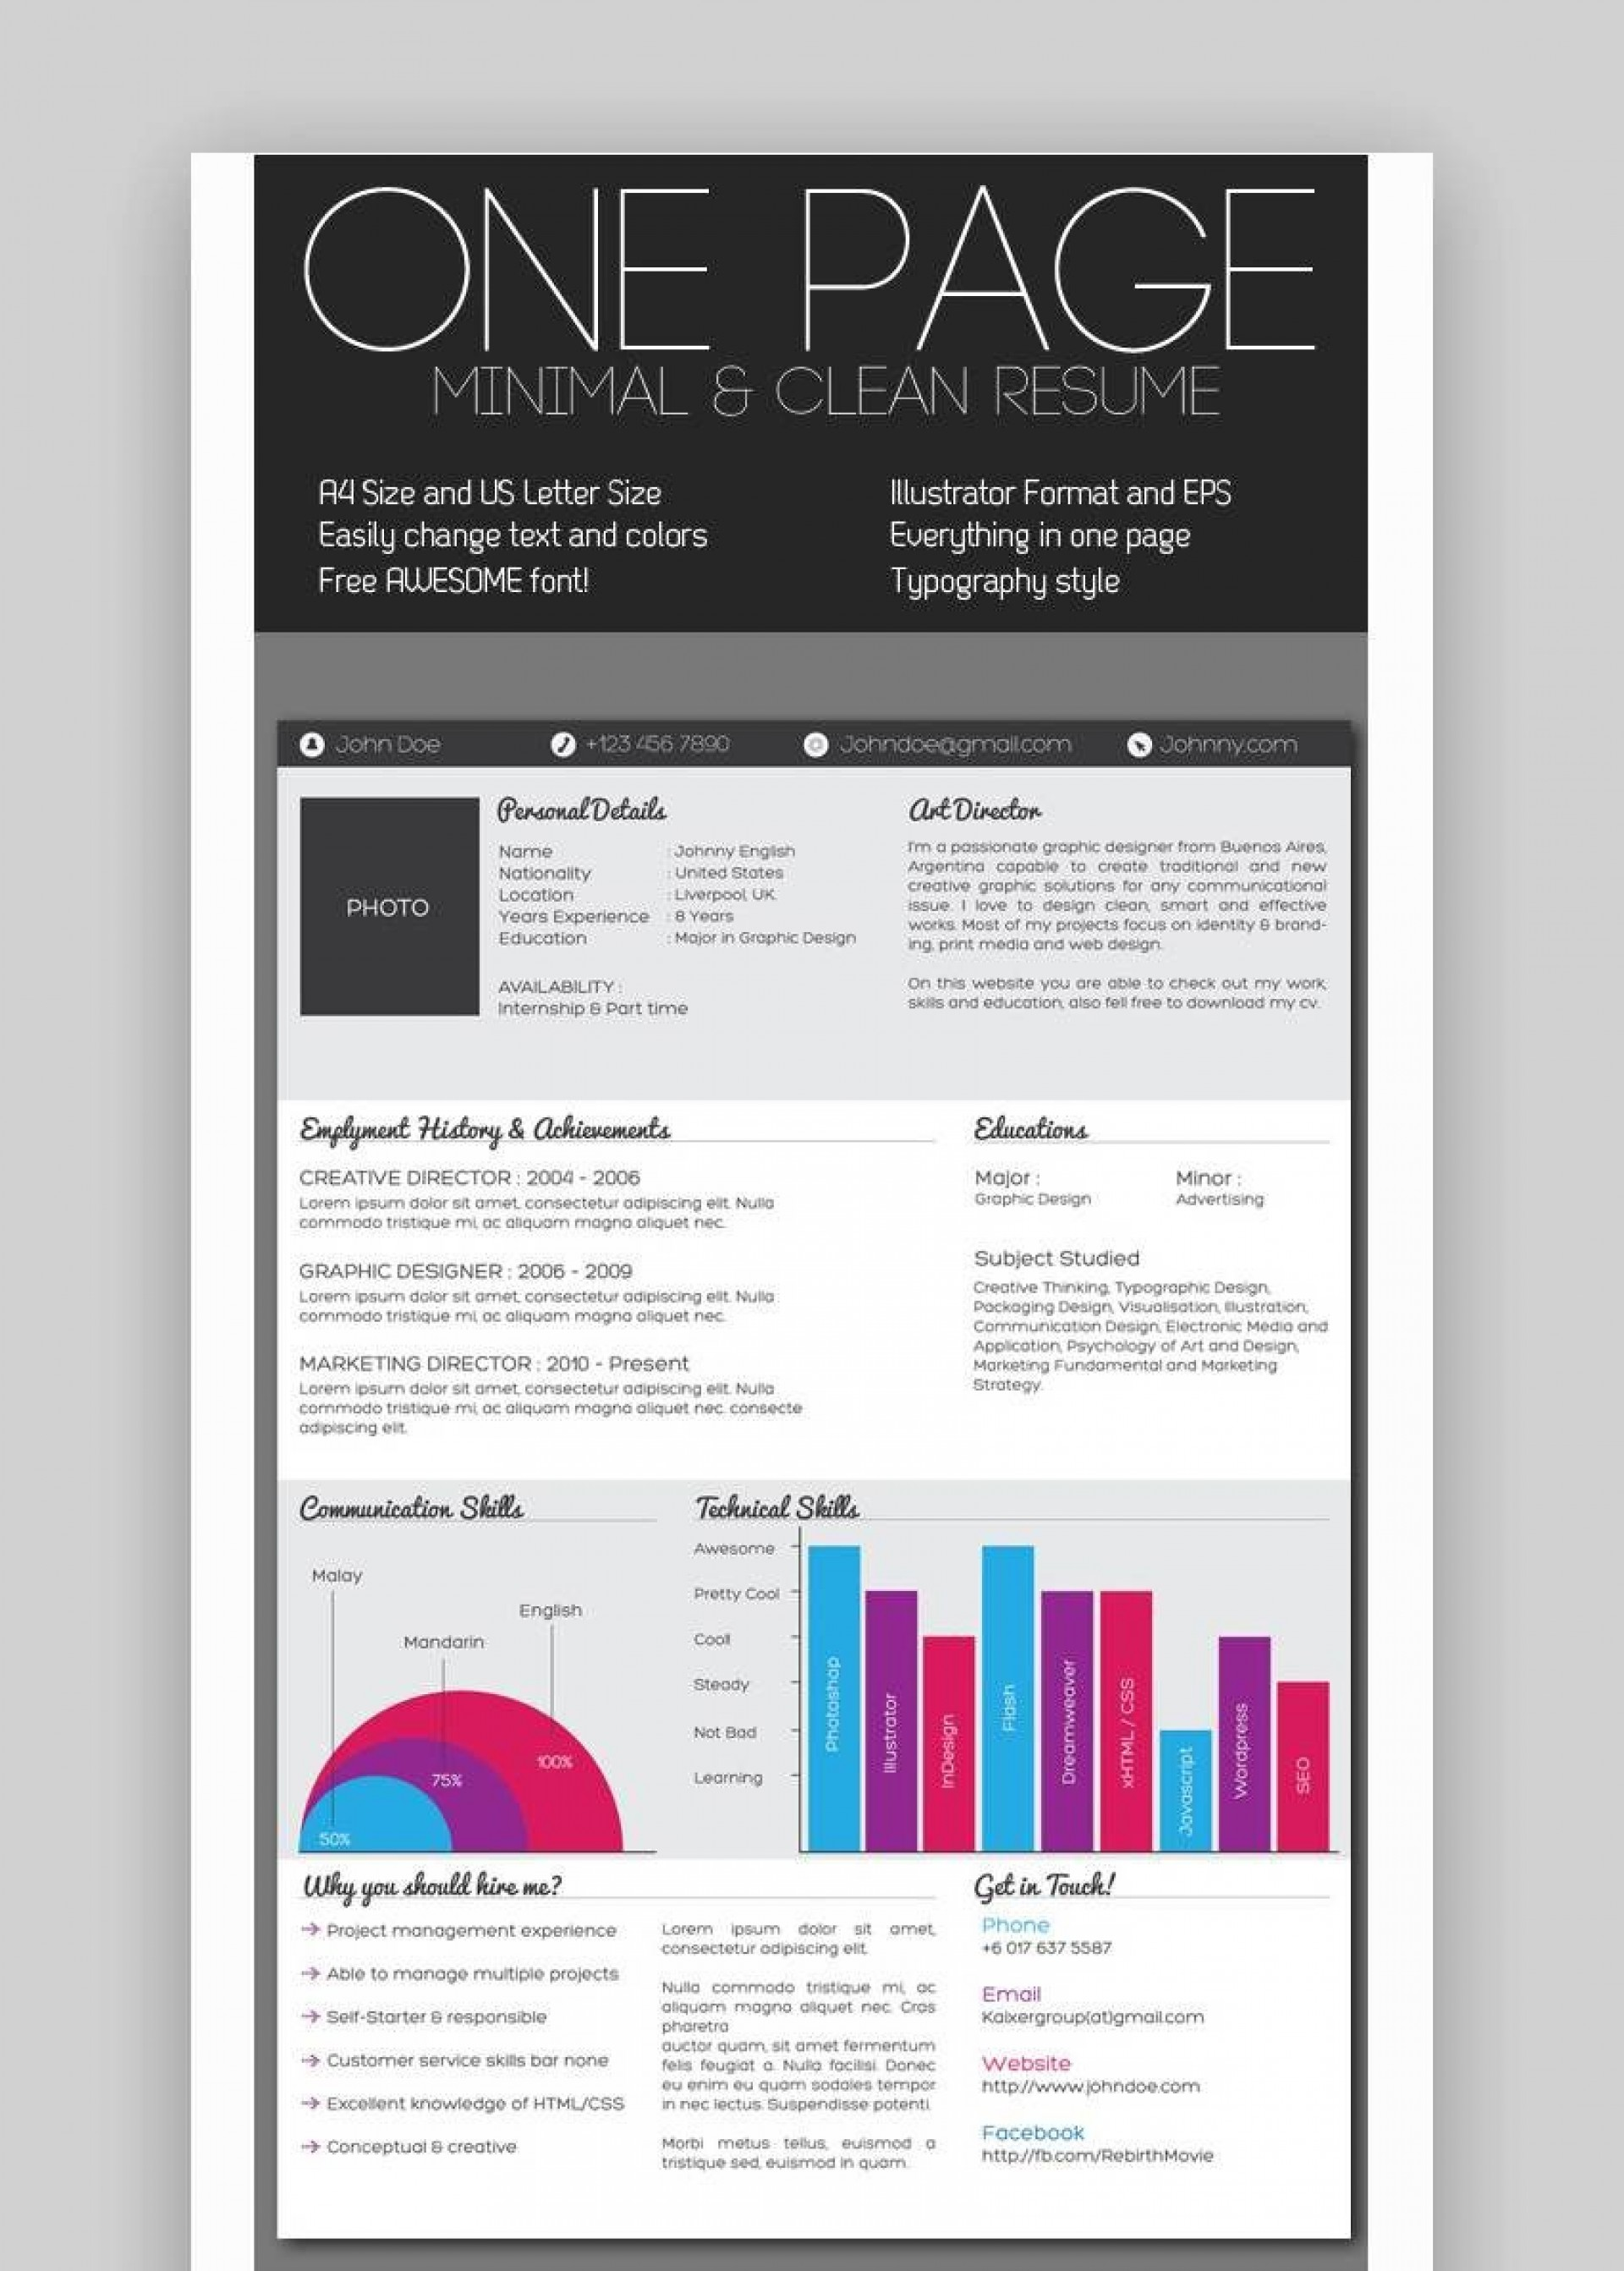 007 Stunning Free One Page Resume Template Concept  Word Download 2018 Best1920